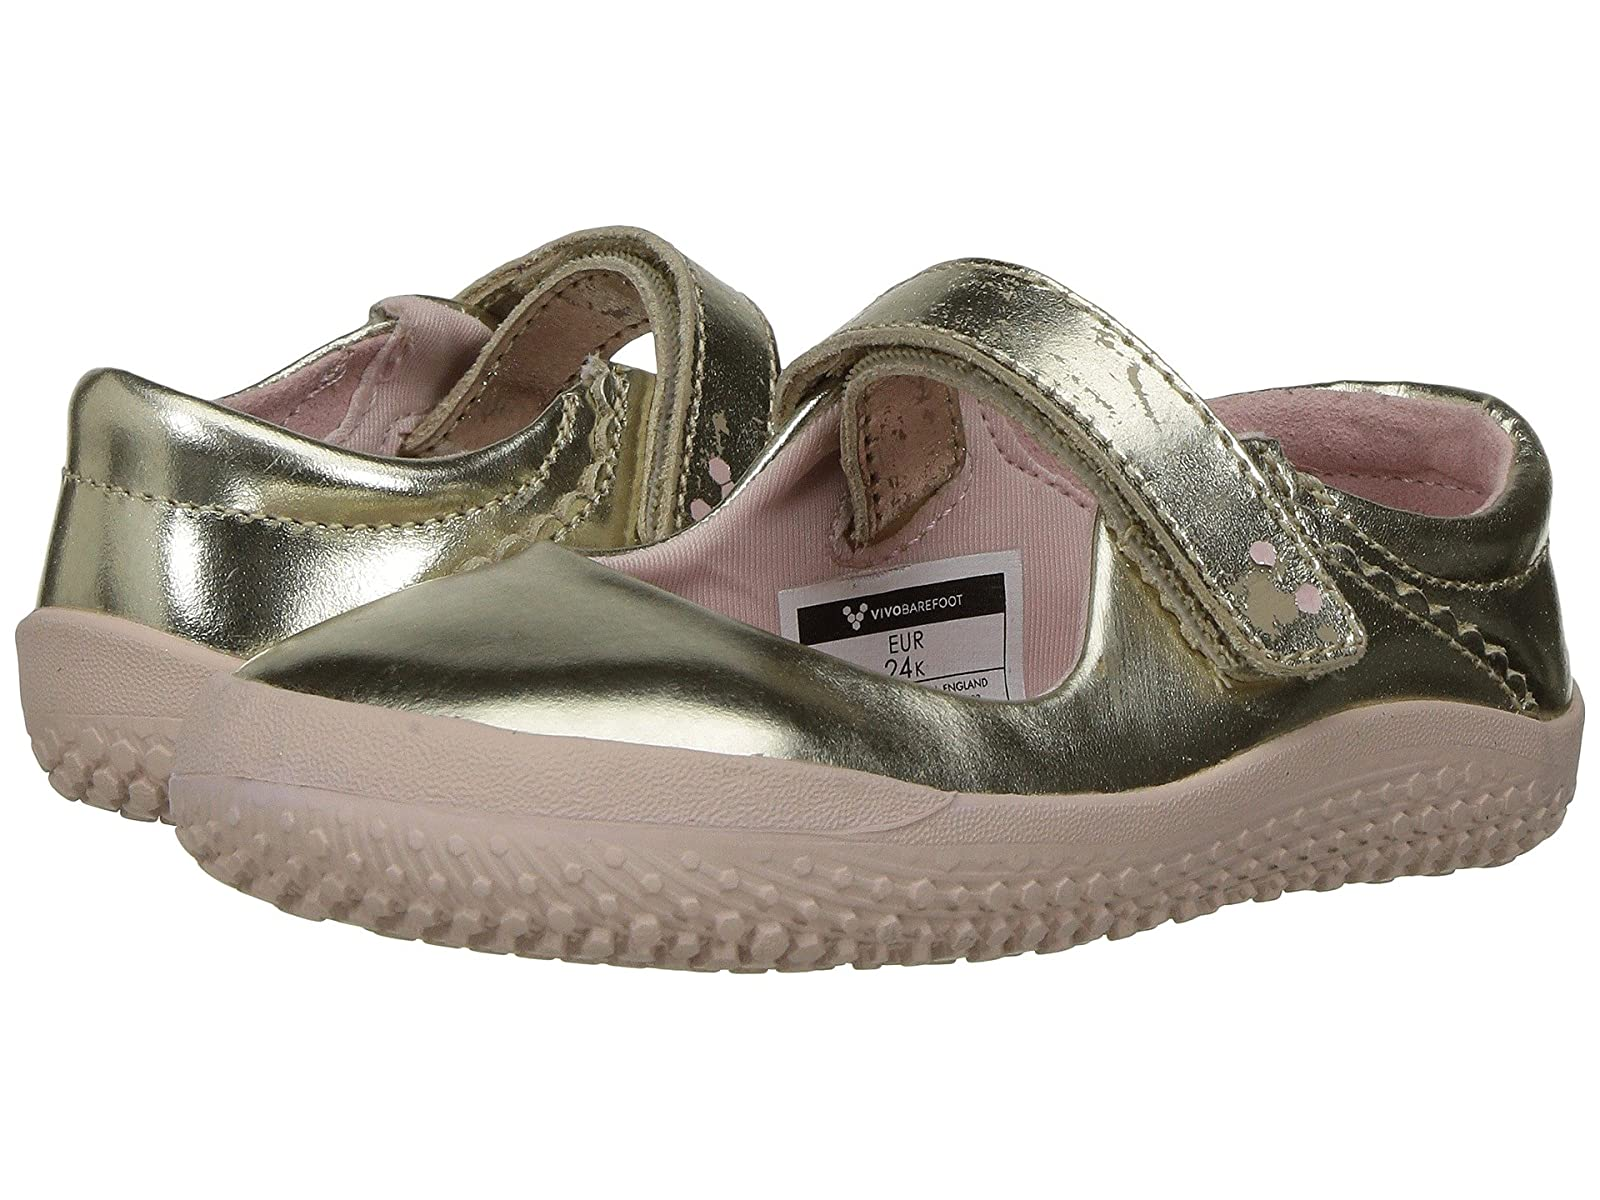 Vivobarefoot Kids Wyn (Toddler/Little Kid)Cheap and distinctive eye-catching shoes